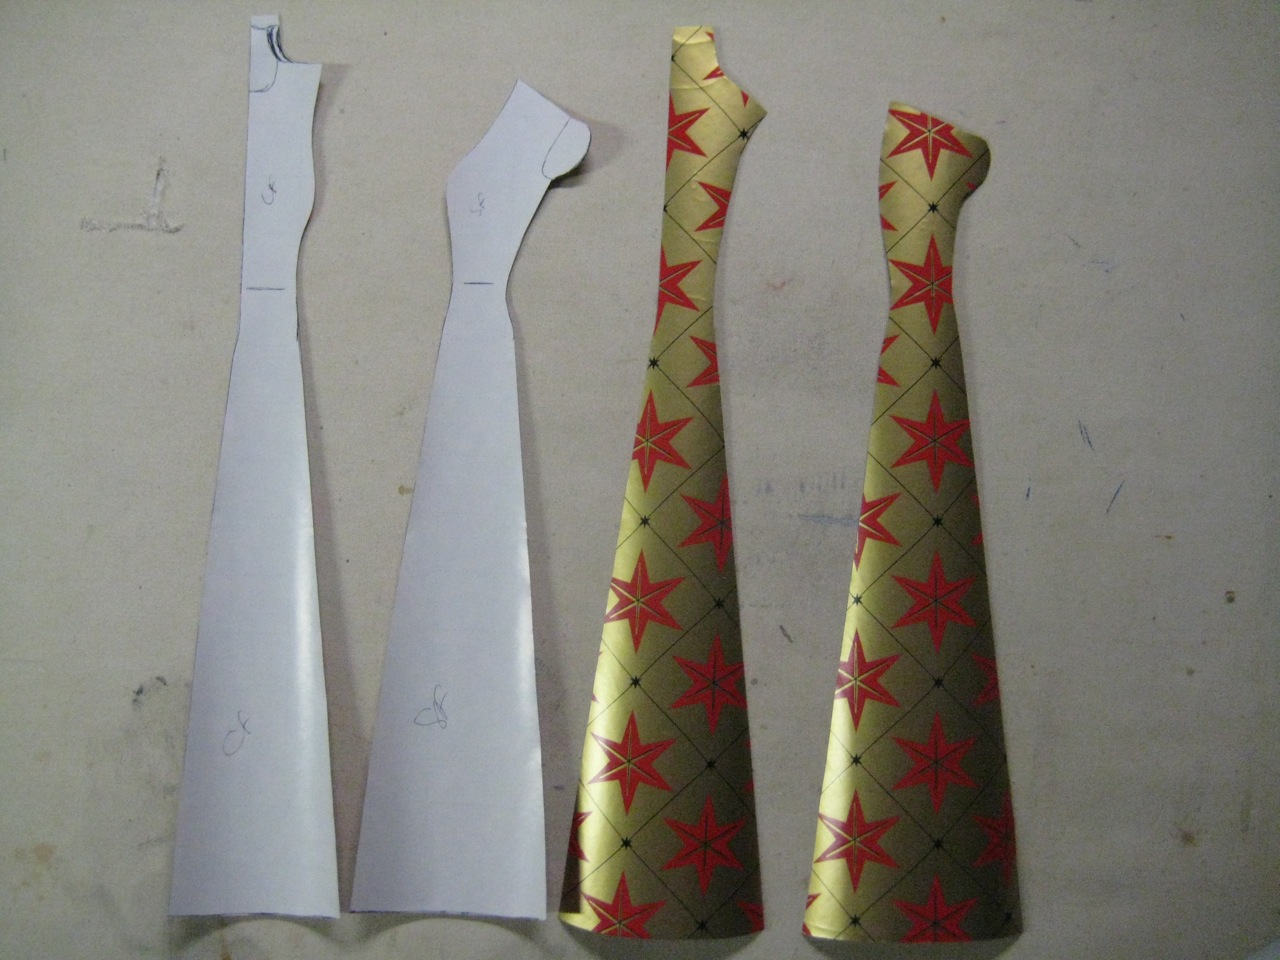 pattern pieces cut from wrapping paper